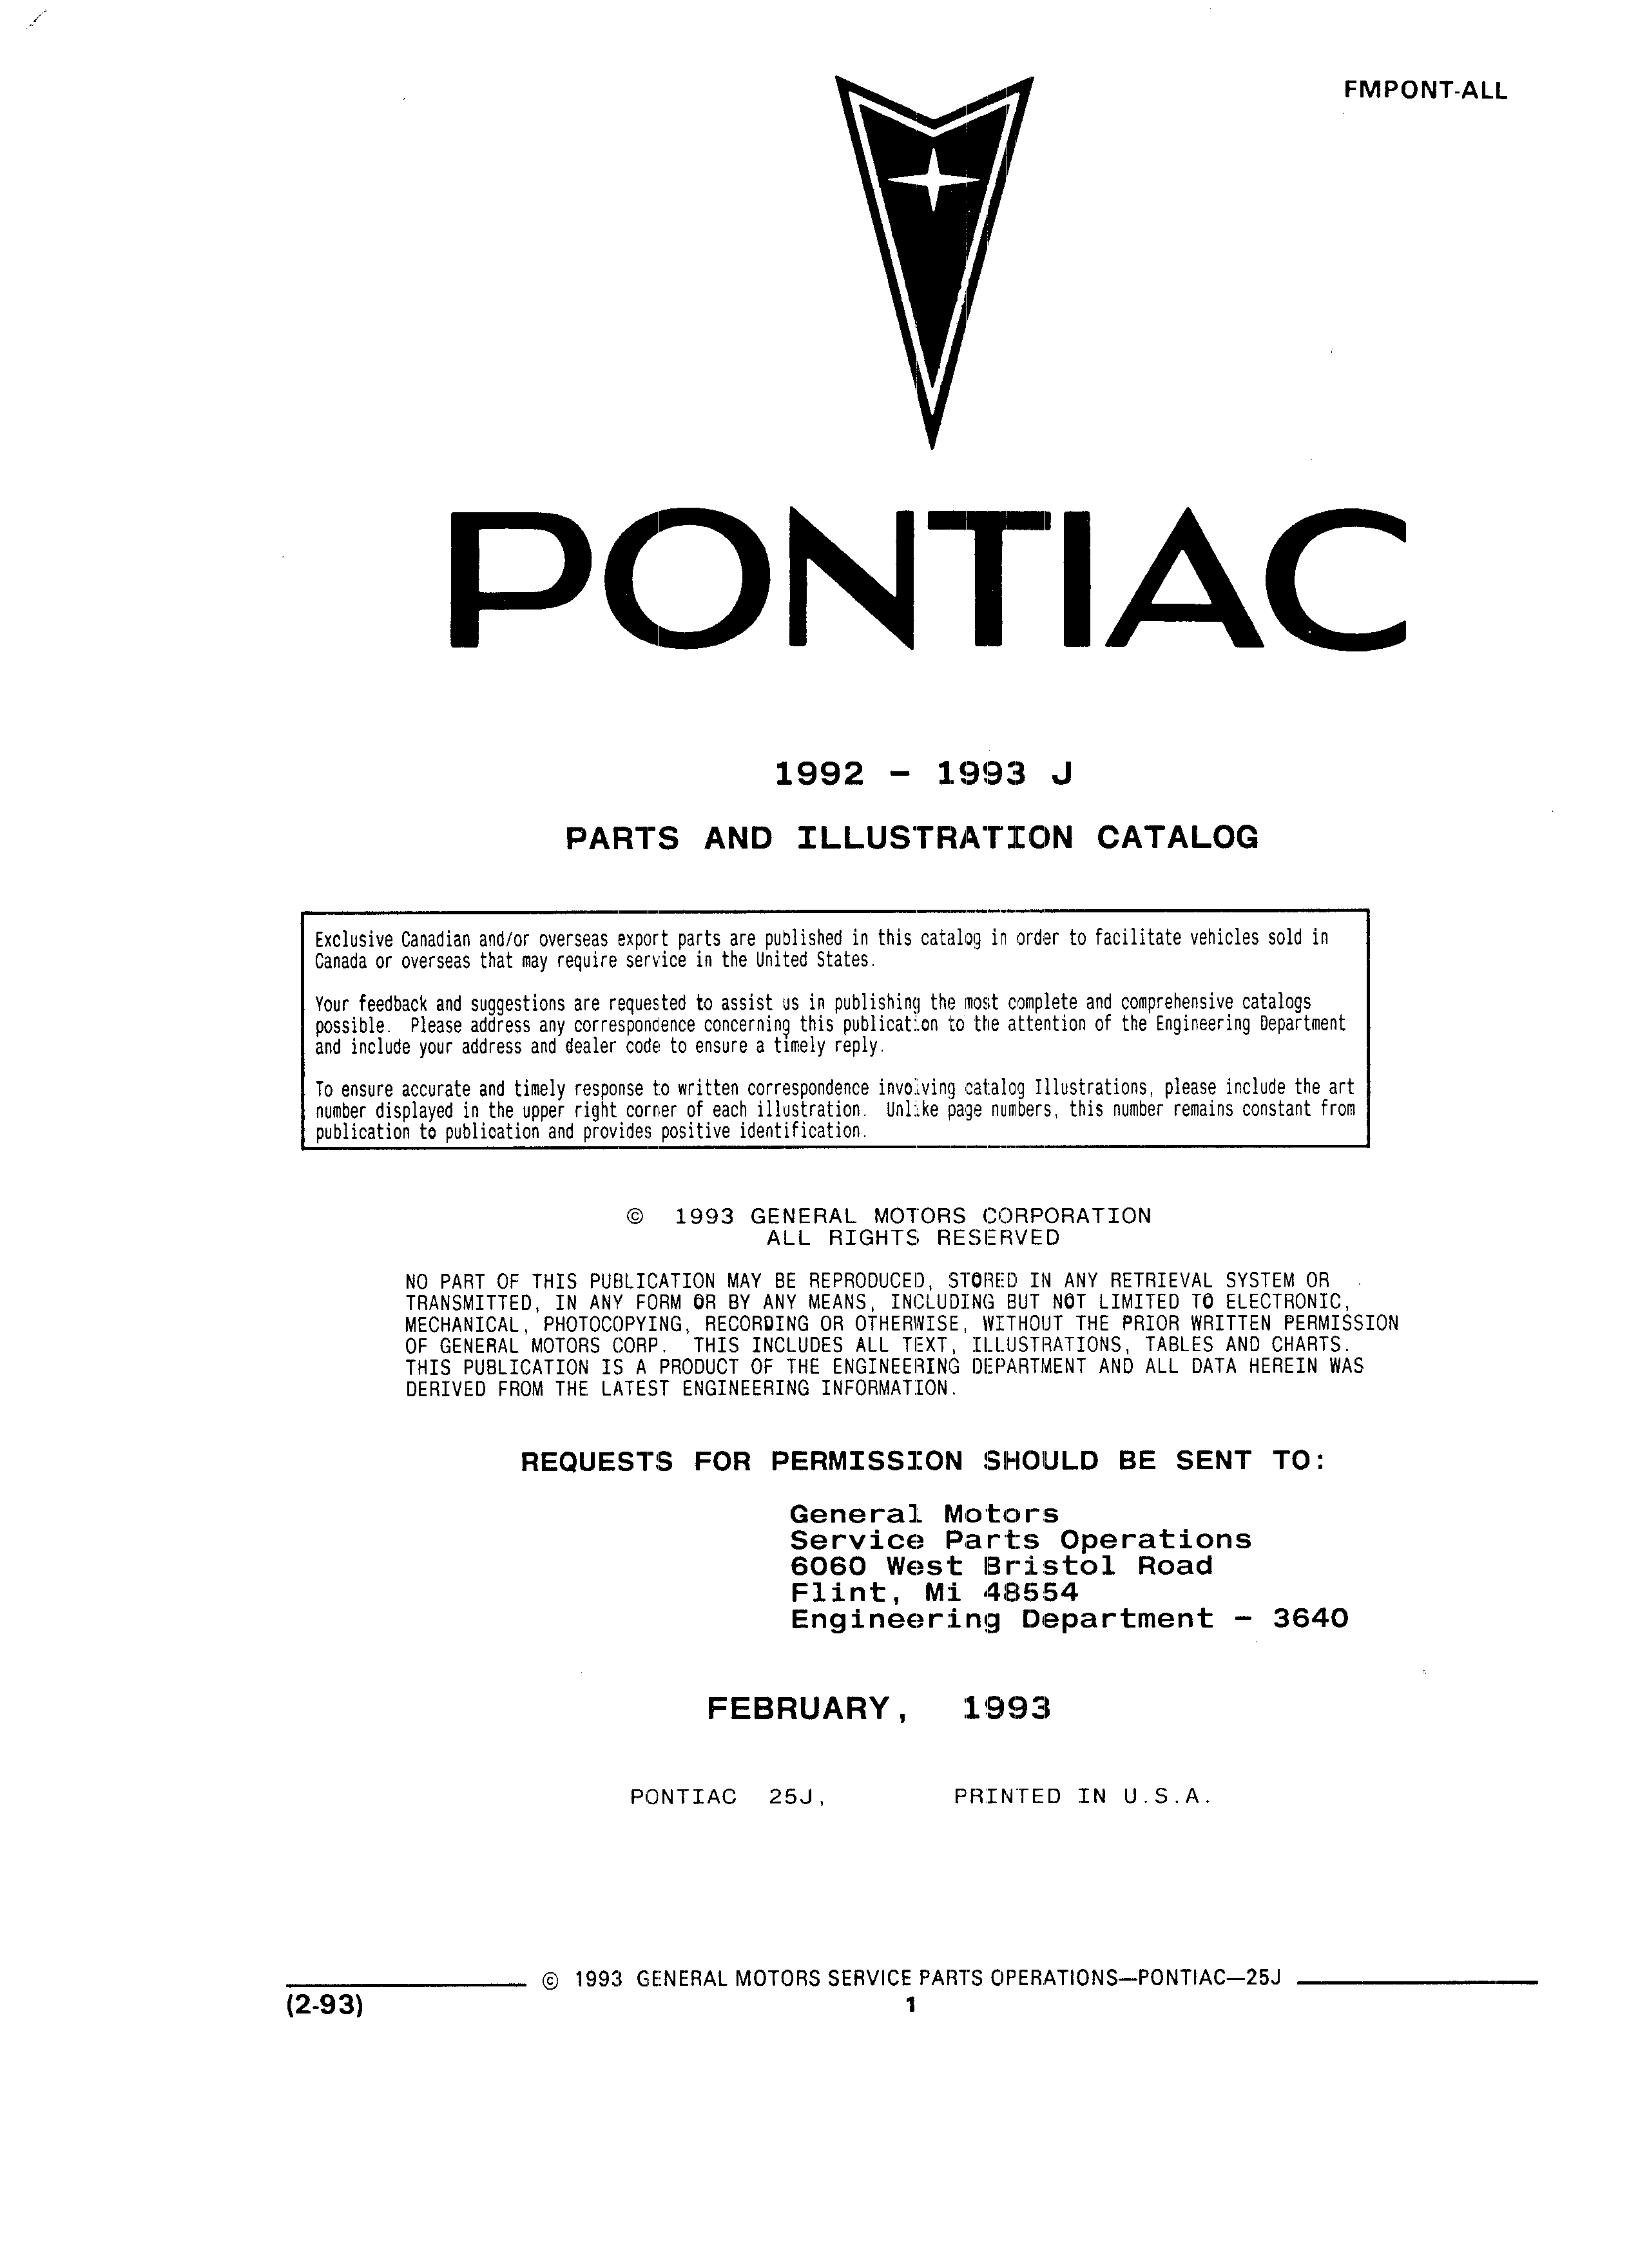 Parts and Illustration Catalog 25J February 1993